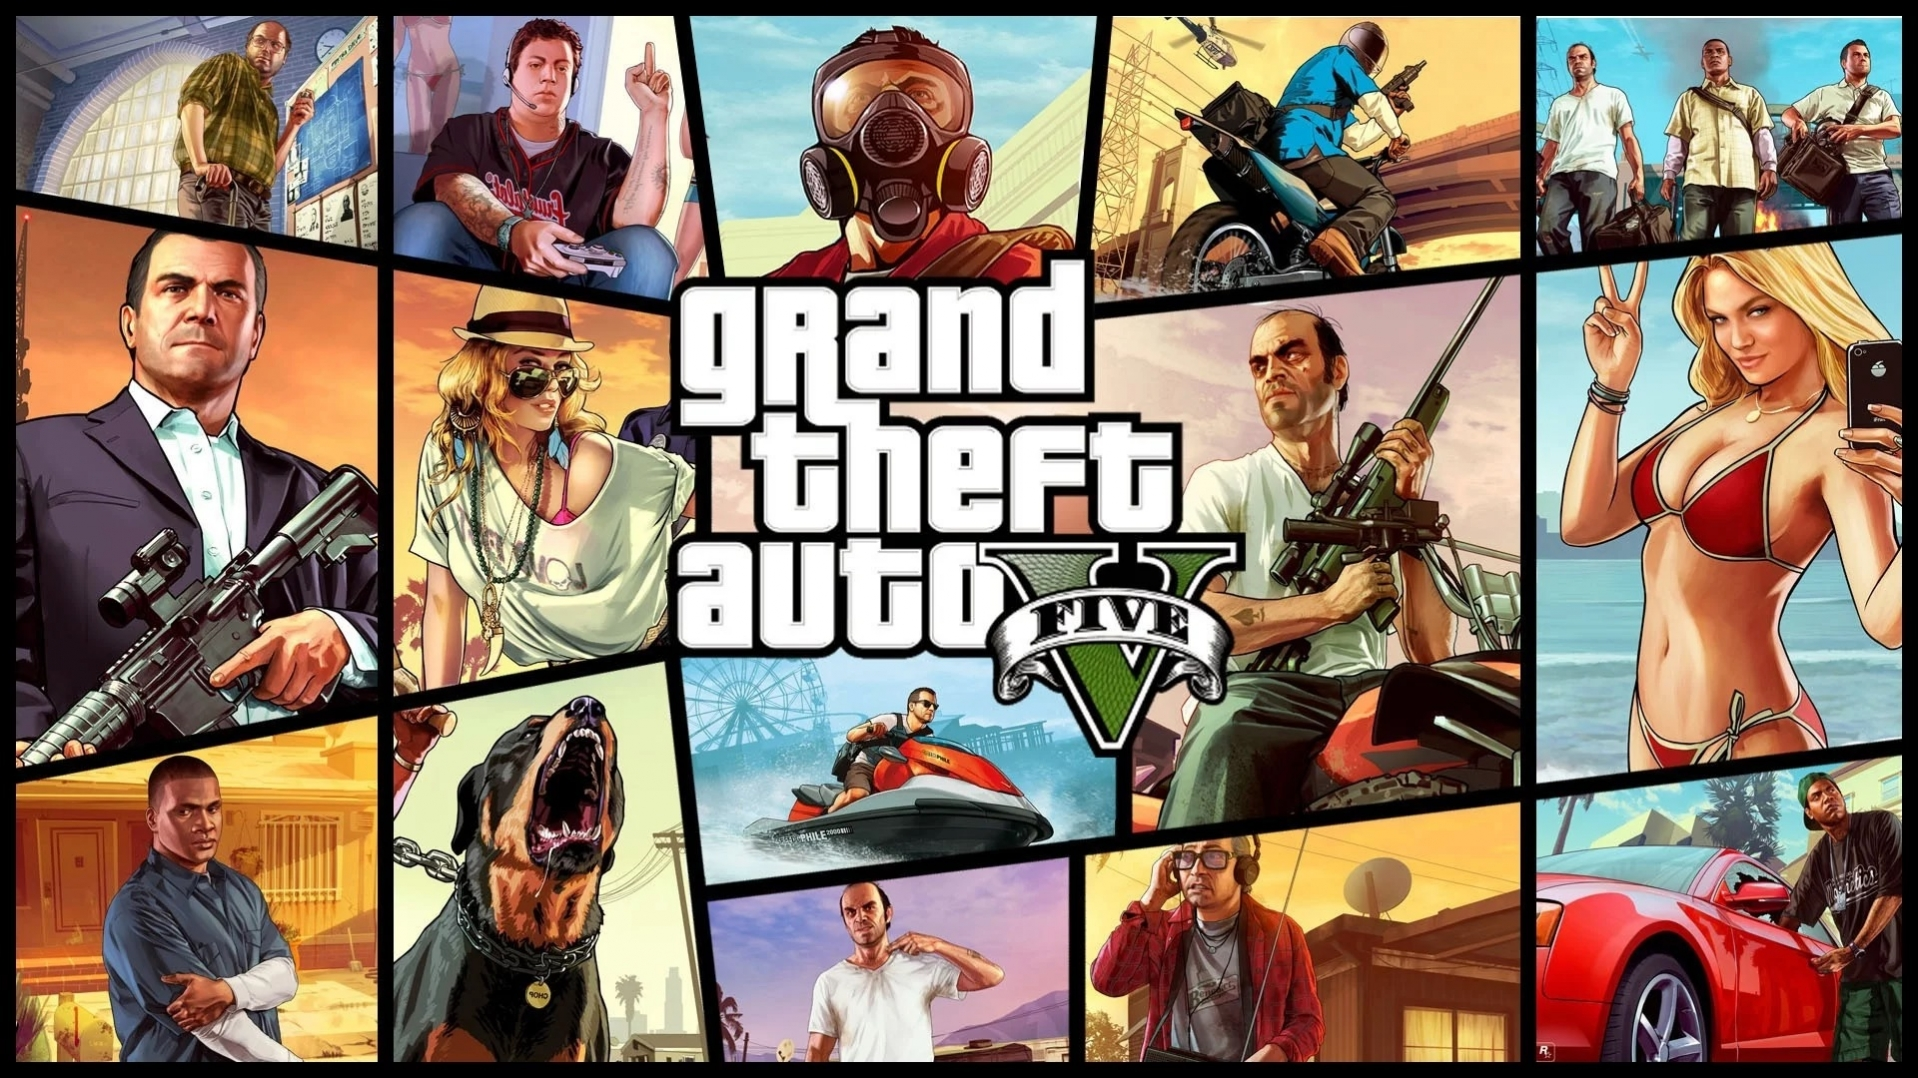 AMD releases their Radeon Software 19 7 4 driver to address GTA V